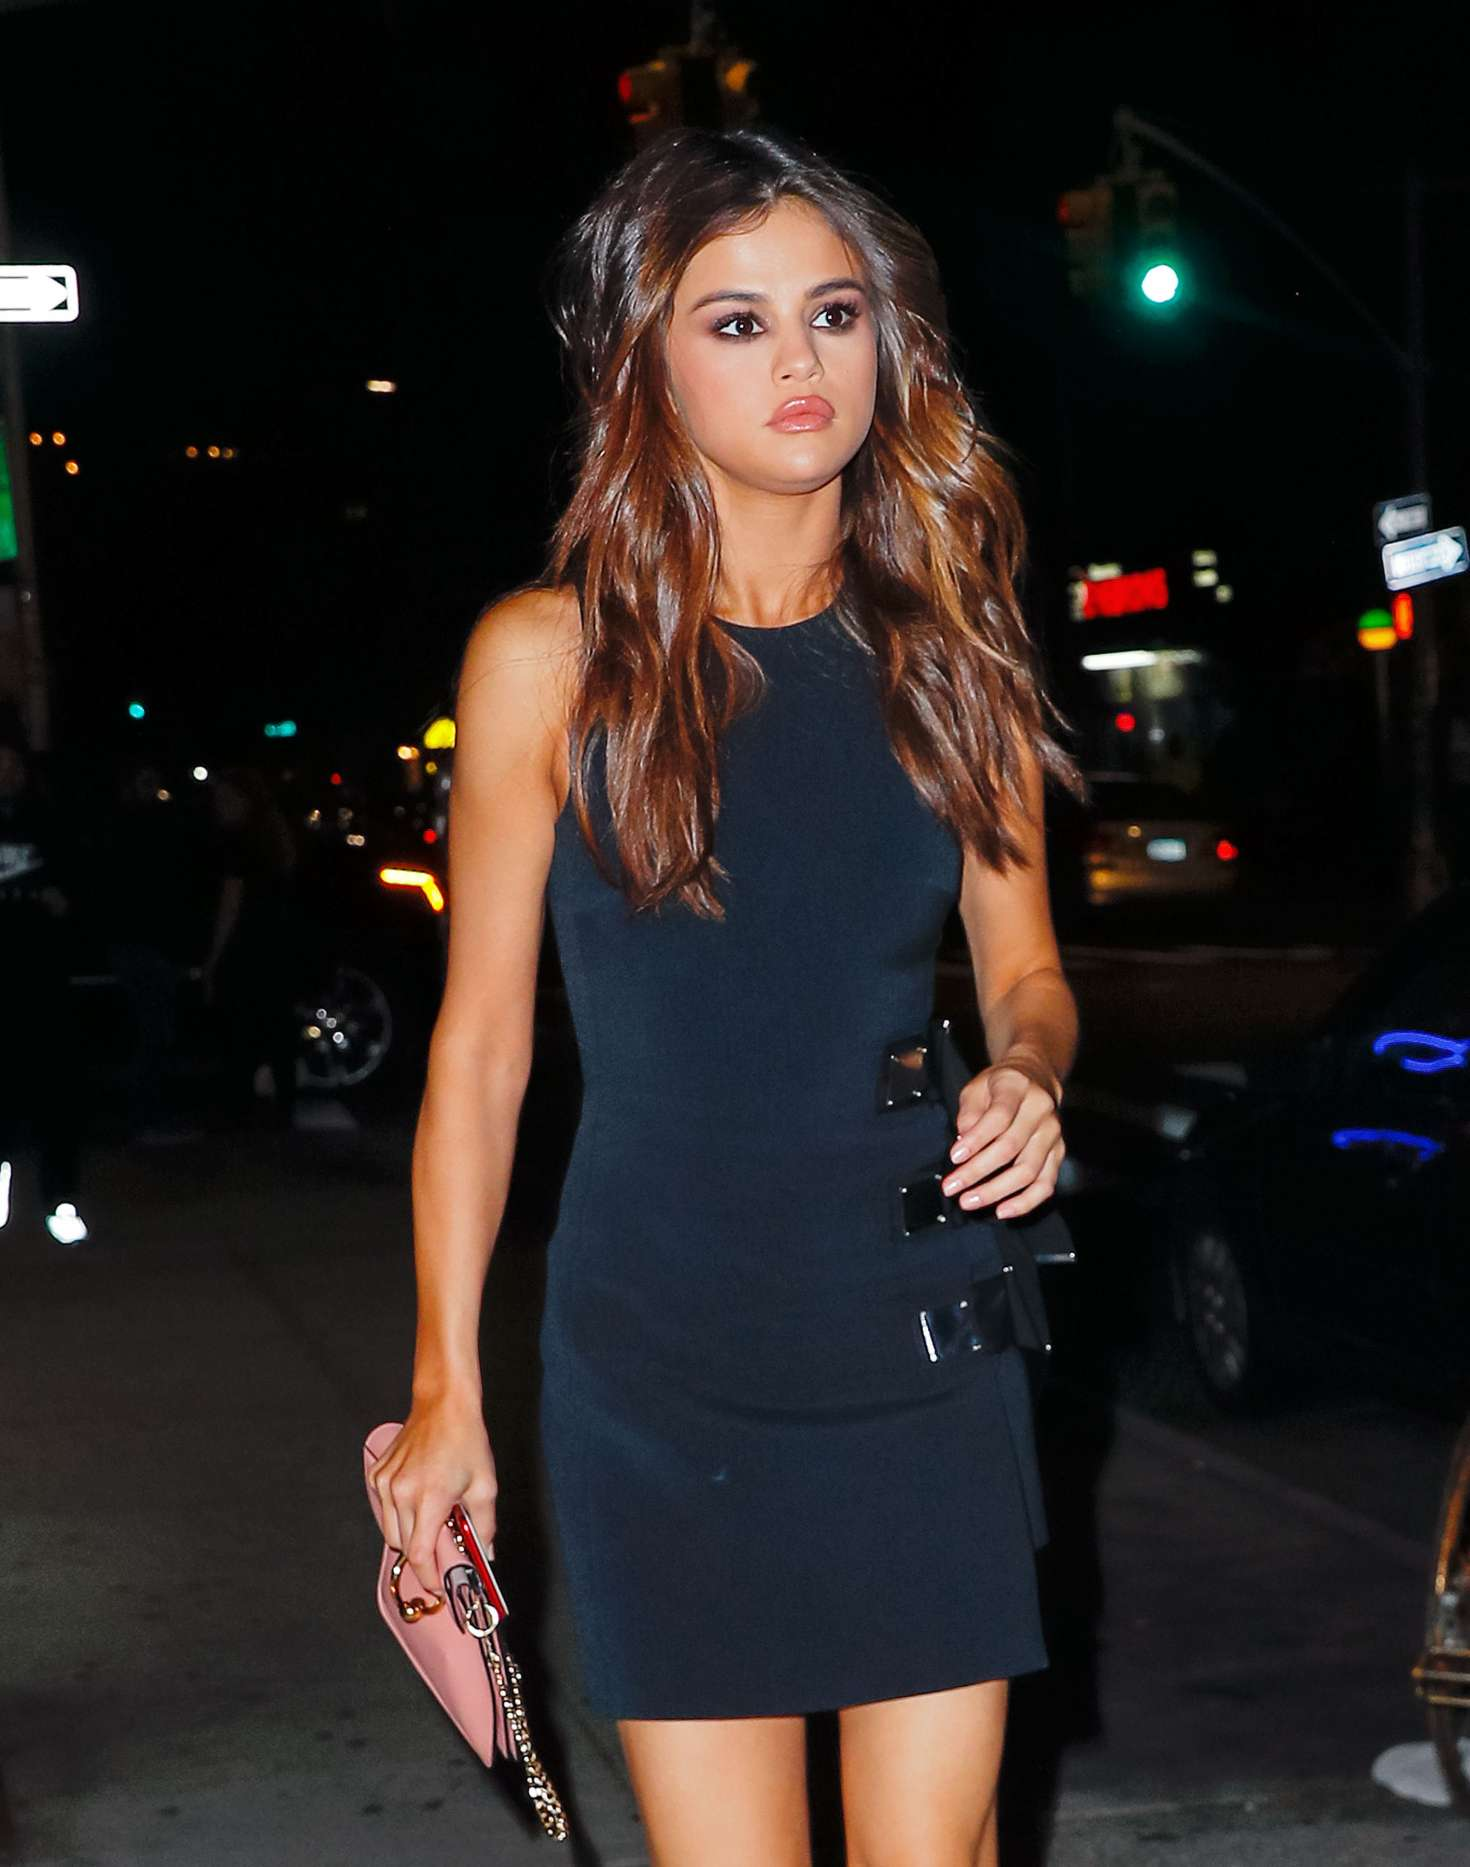 selena gomez in mini dress 32 gotceleb